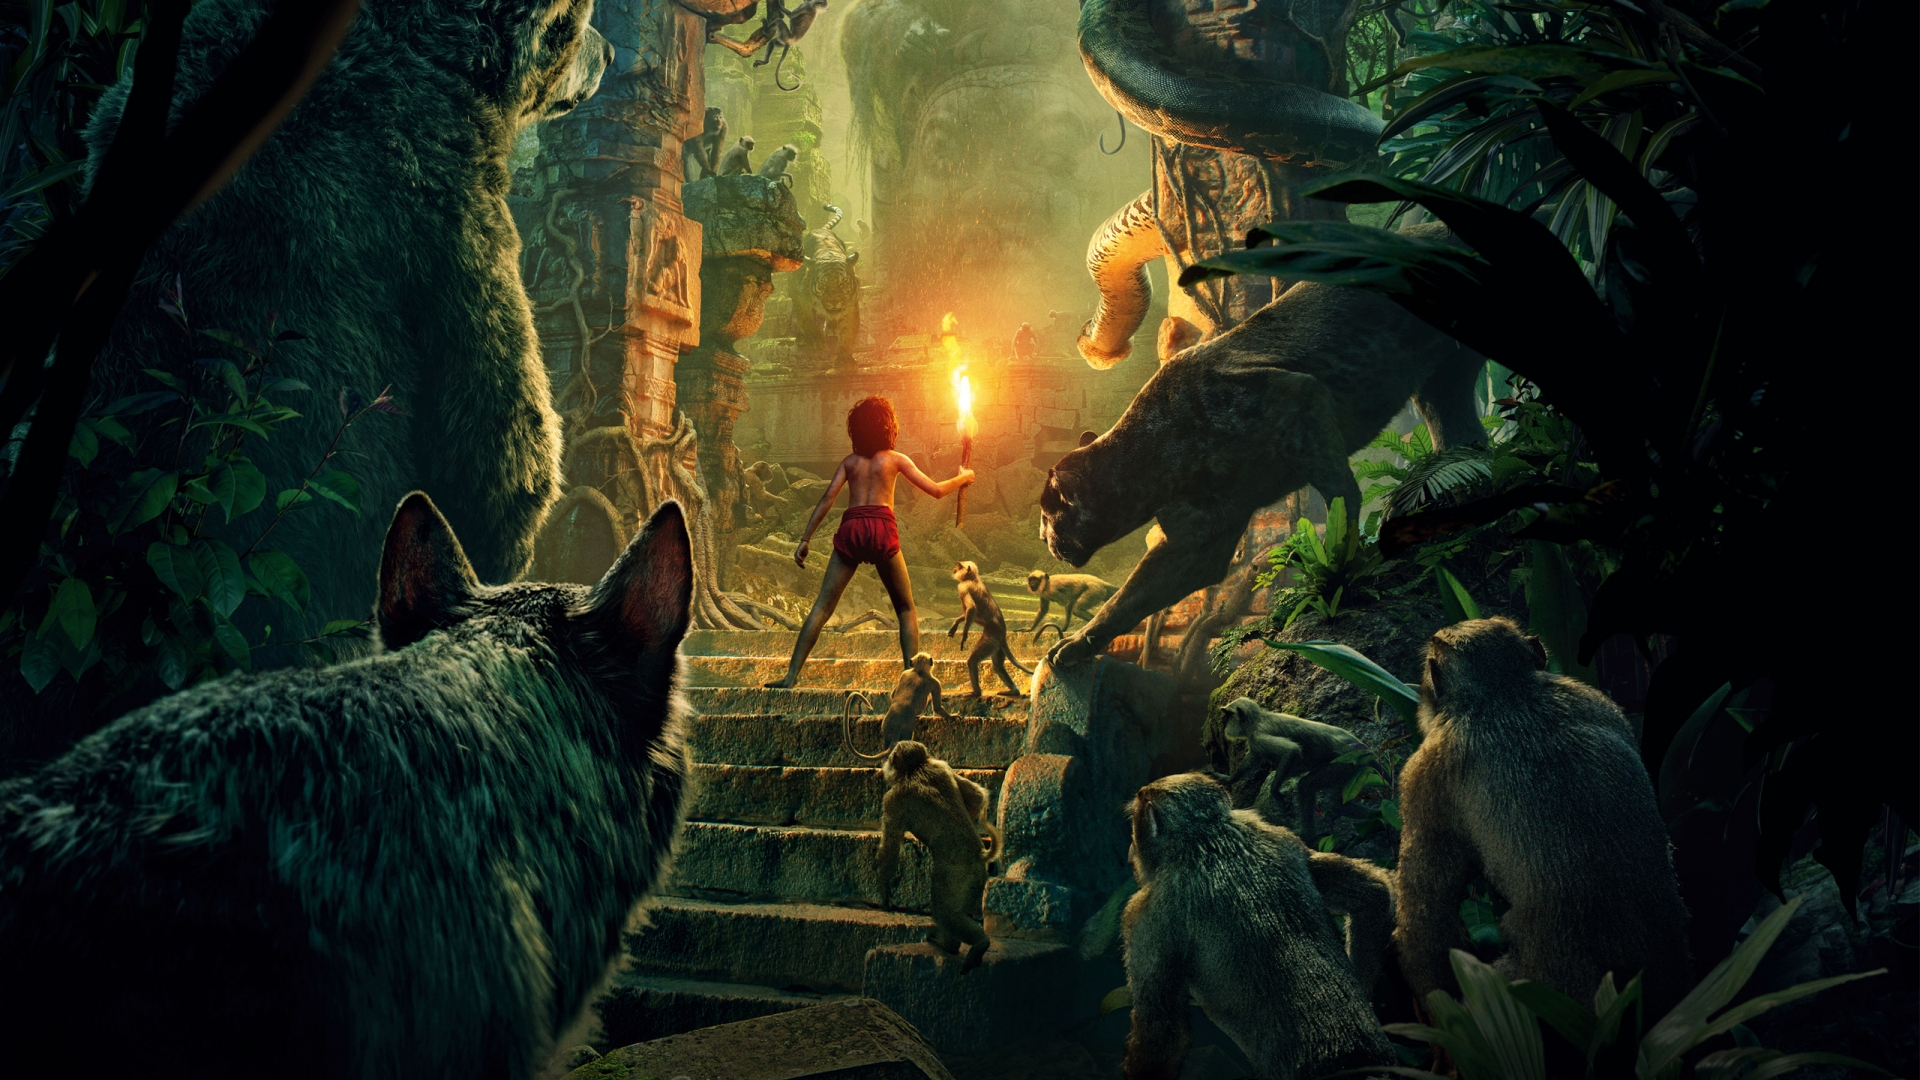 The Jungle Book 2016 for 1920 x 1080 HDTV 1080p resolution